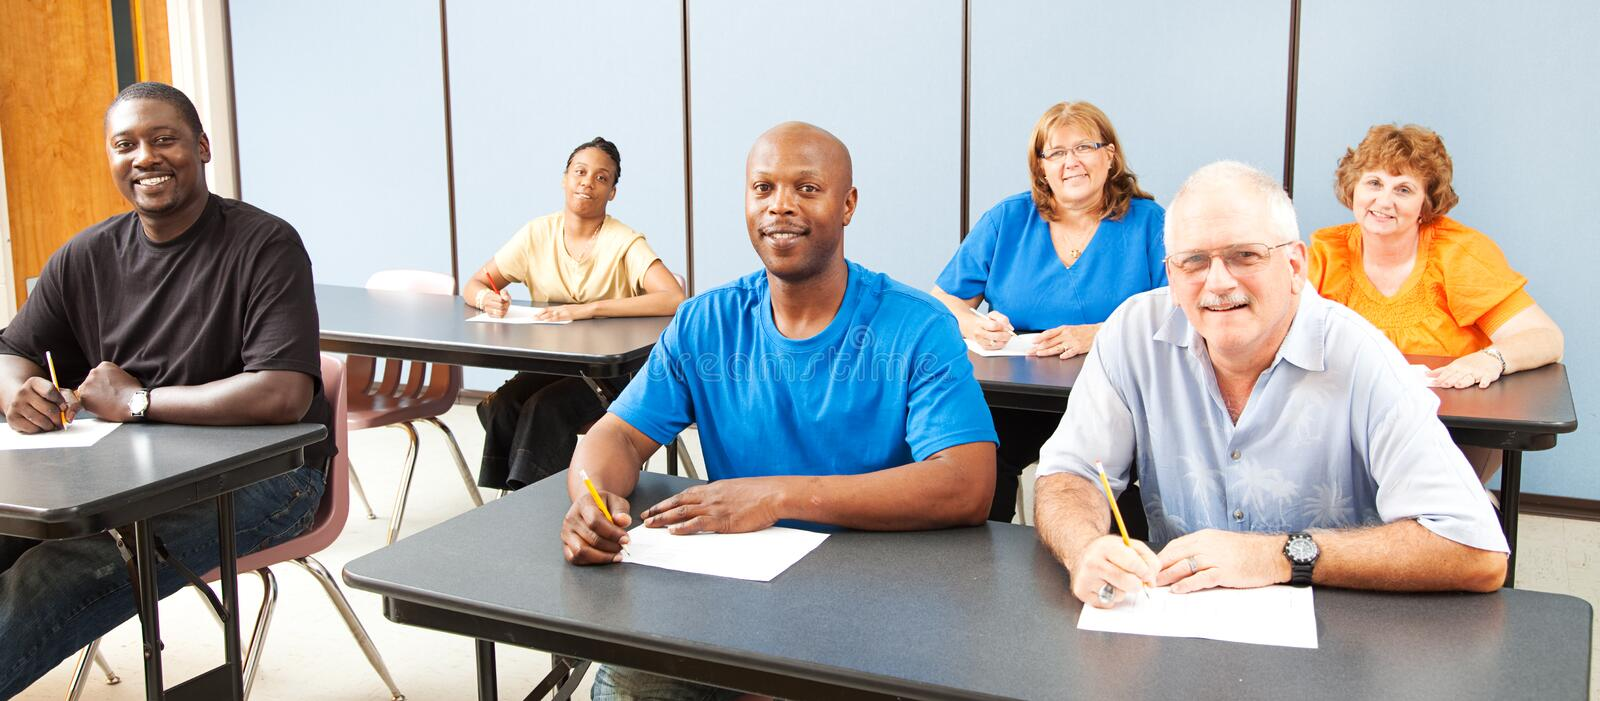 Diversity in Adult Education - Banner stock photos